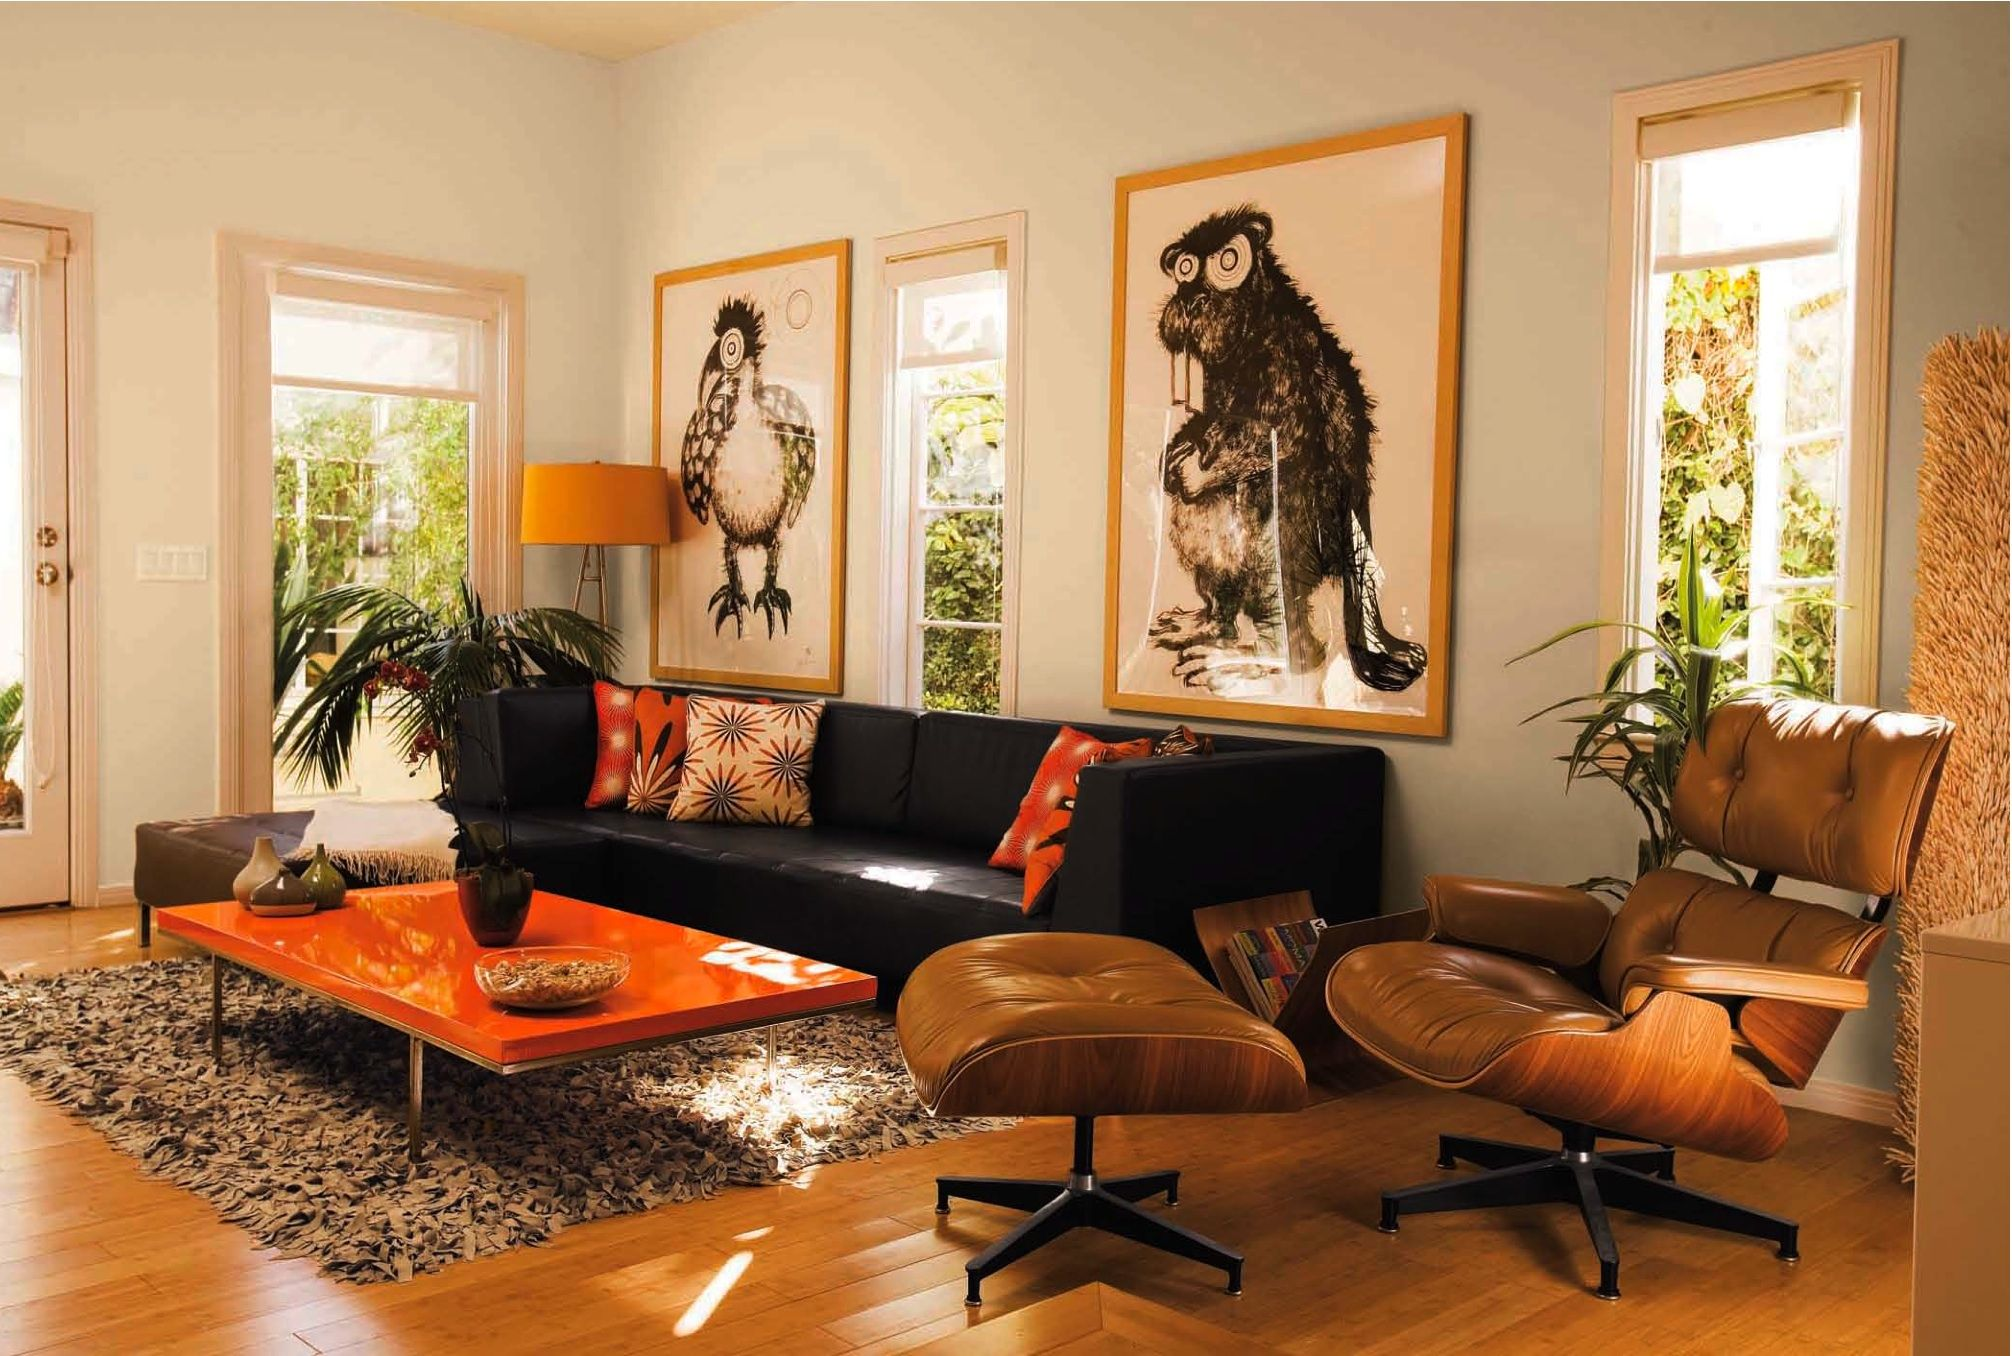 Eames lounge chair living room - Traditional Living Room With Orange Table With Black Sofa